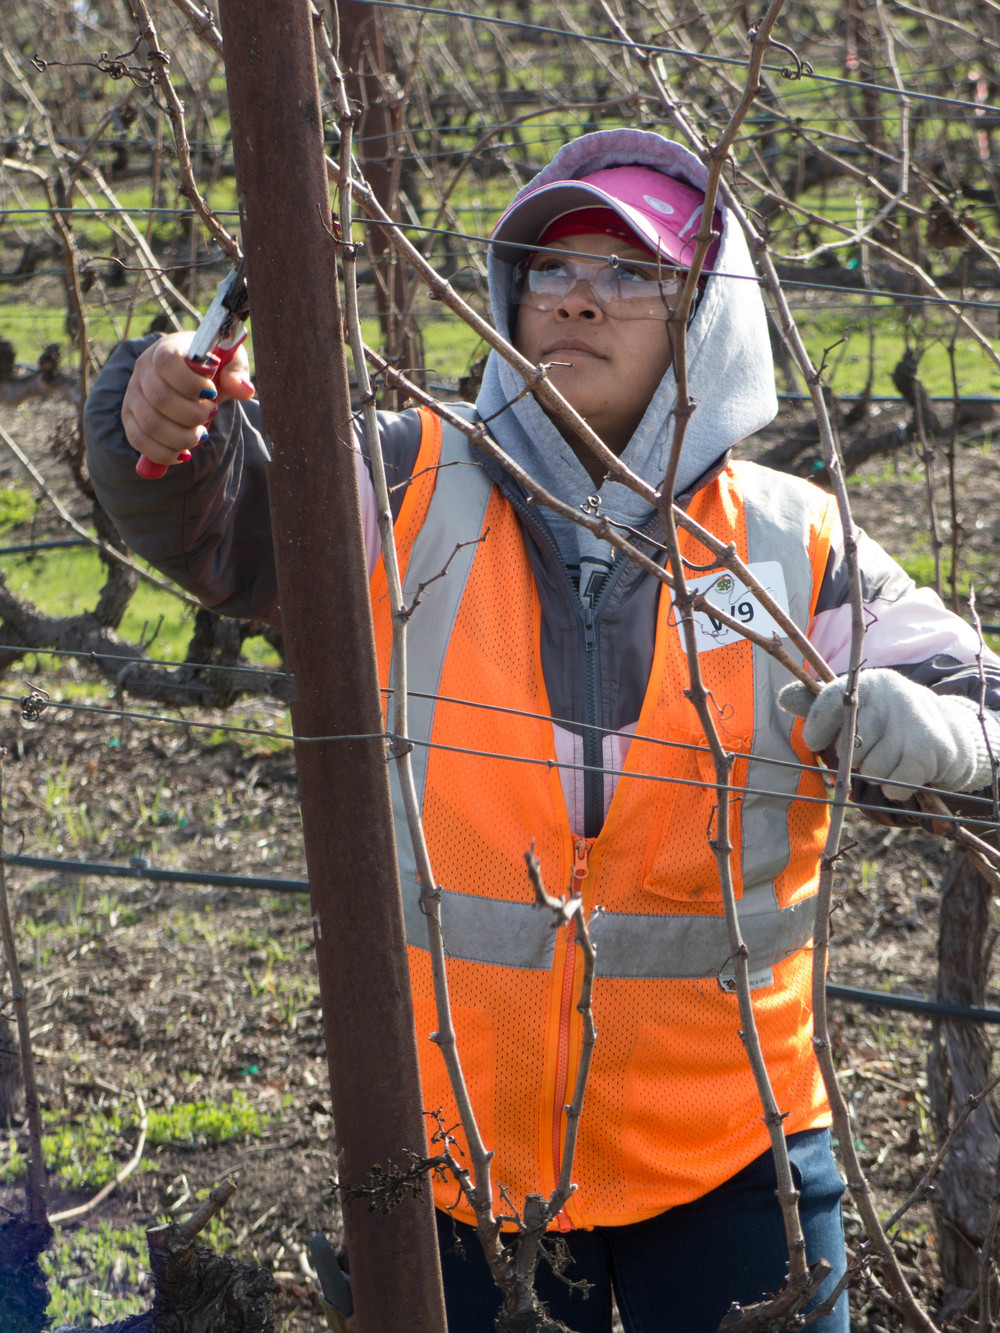 Napa Valley Grape Grower 2014 Pruning Award Winner  Maria Romero  of Walsh Vineyards Management prunes a vine with precise quality.